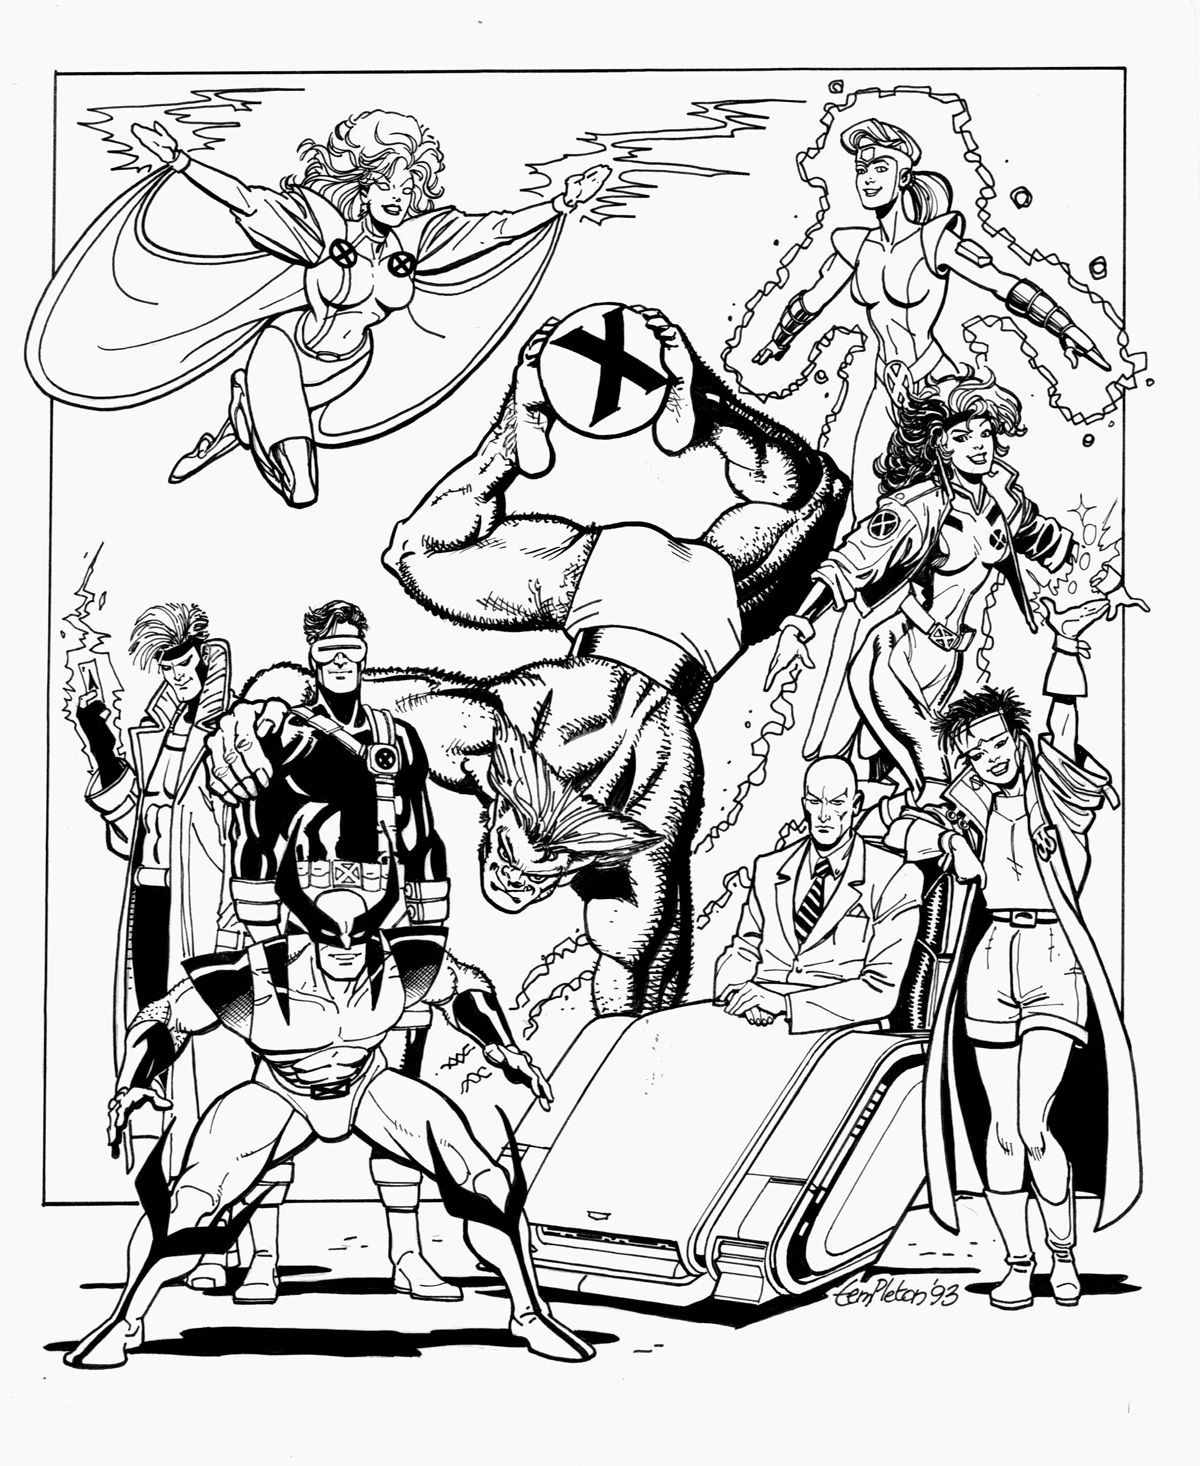 X men superheroes - Books and Comics Coloring Pages for ...